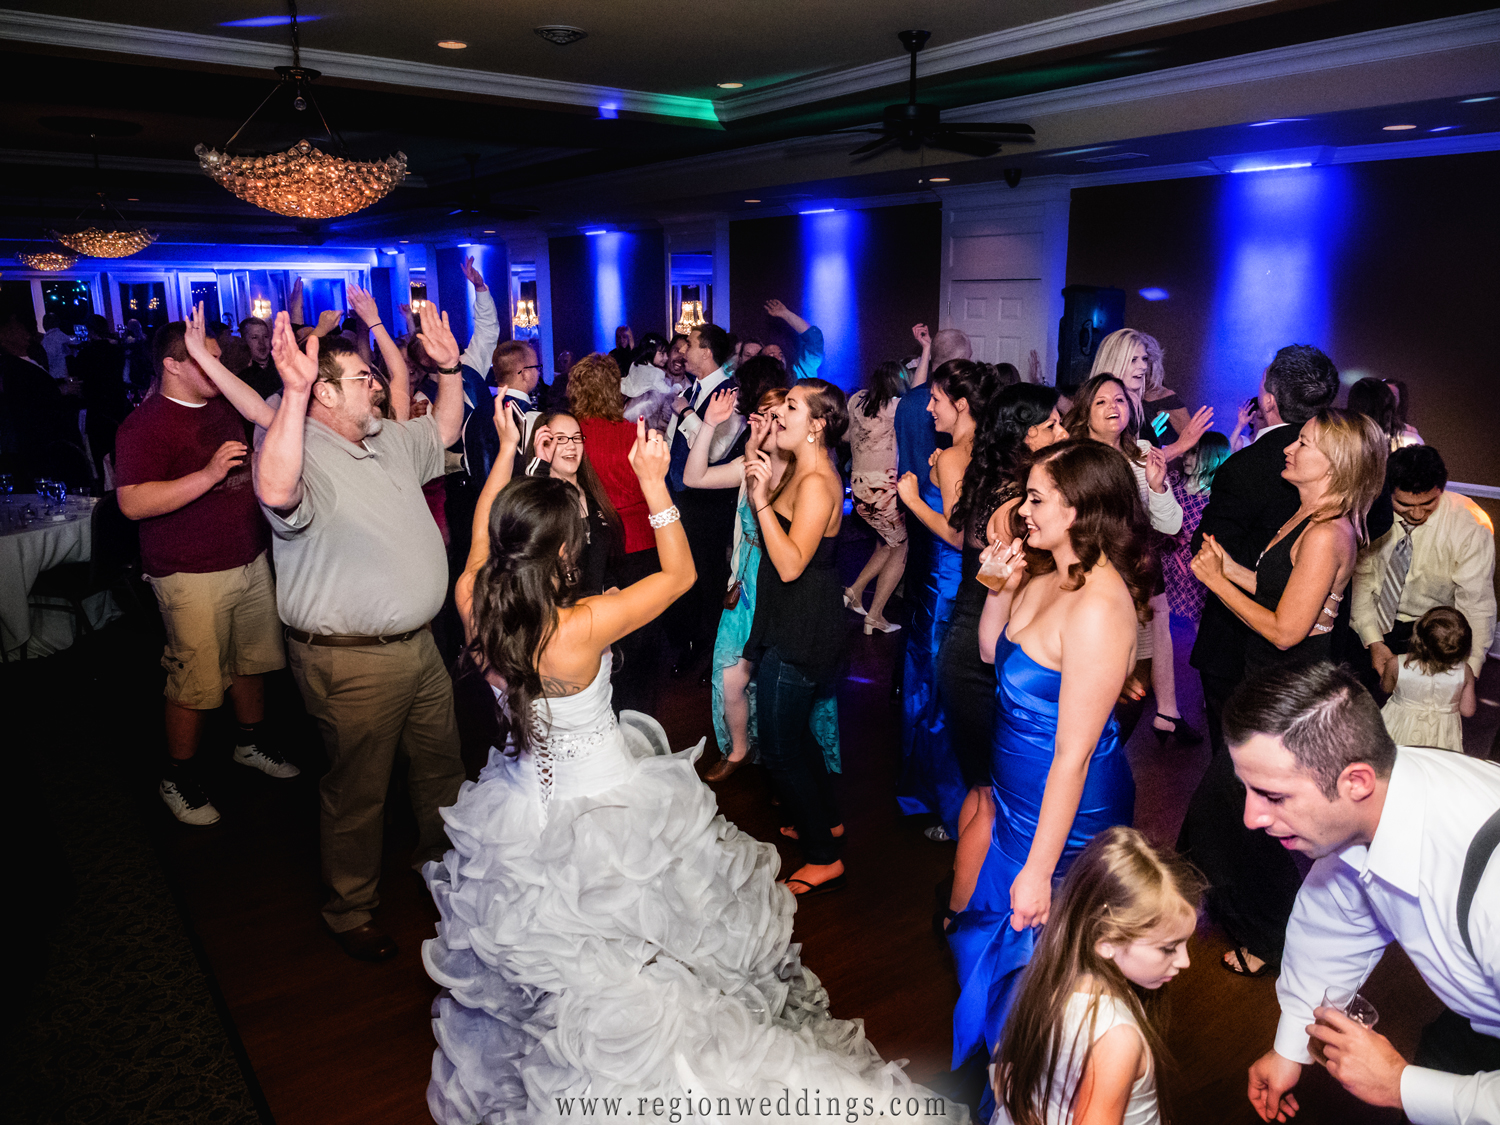 A packed dance floor for a wedding reception at White Hawk Country Club.